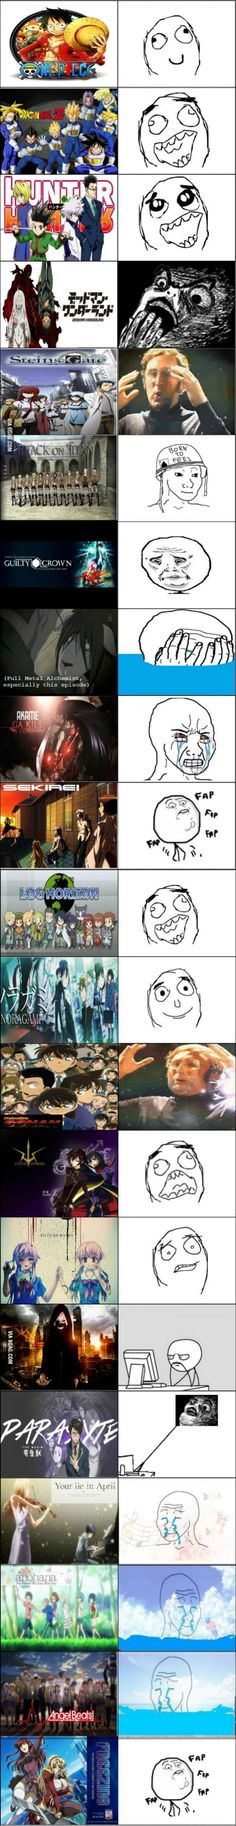 List Of Animes And Player Reactions That All Gamers Will Understand So Well! Haha reacting to different anime series. This is too true especially the FMA one!Haha reacting to different anime series. This is too true especially the FMA one! Anime Meme, Otaku Anime, All Anime, Manga Anime, Anime Art, Anime Watch, Manga Girl, Anime Girls, Anime Comics